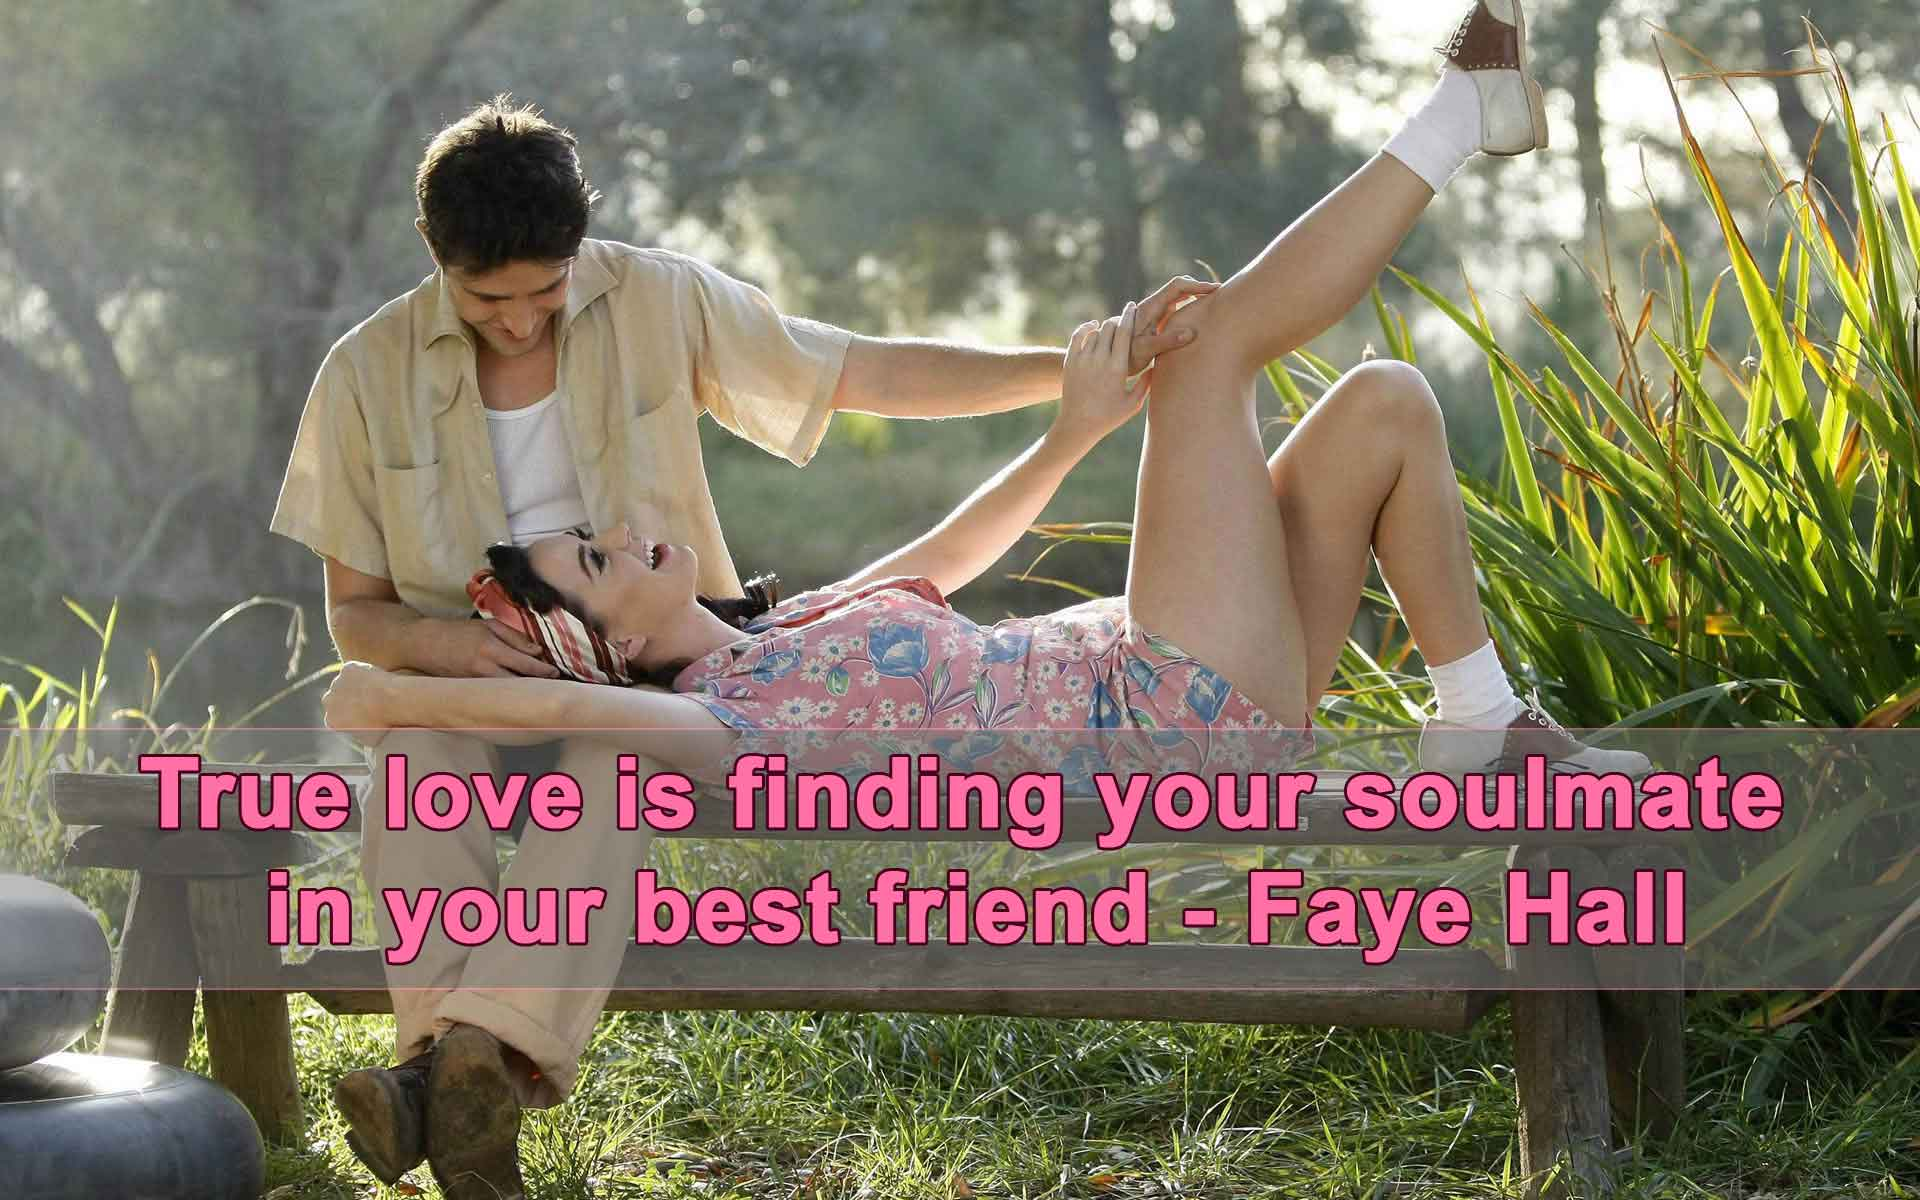 True love is finding your soulmate in your best friend